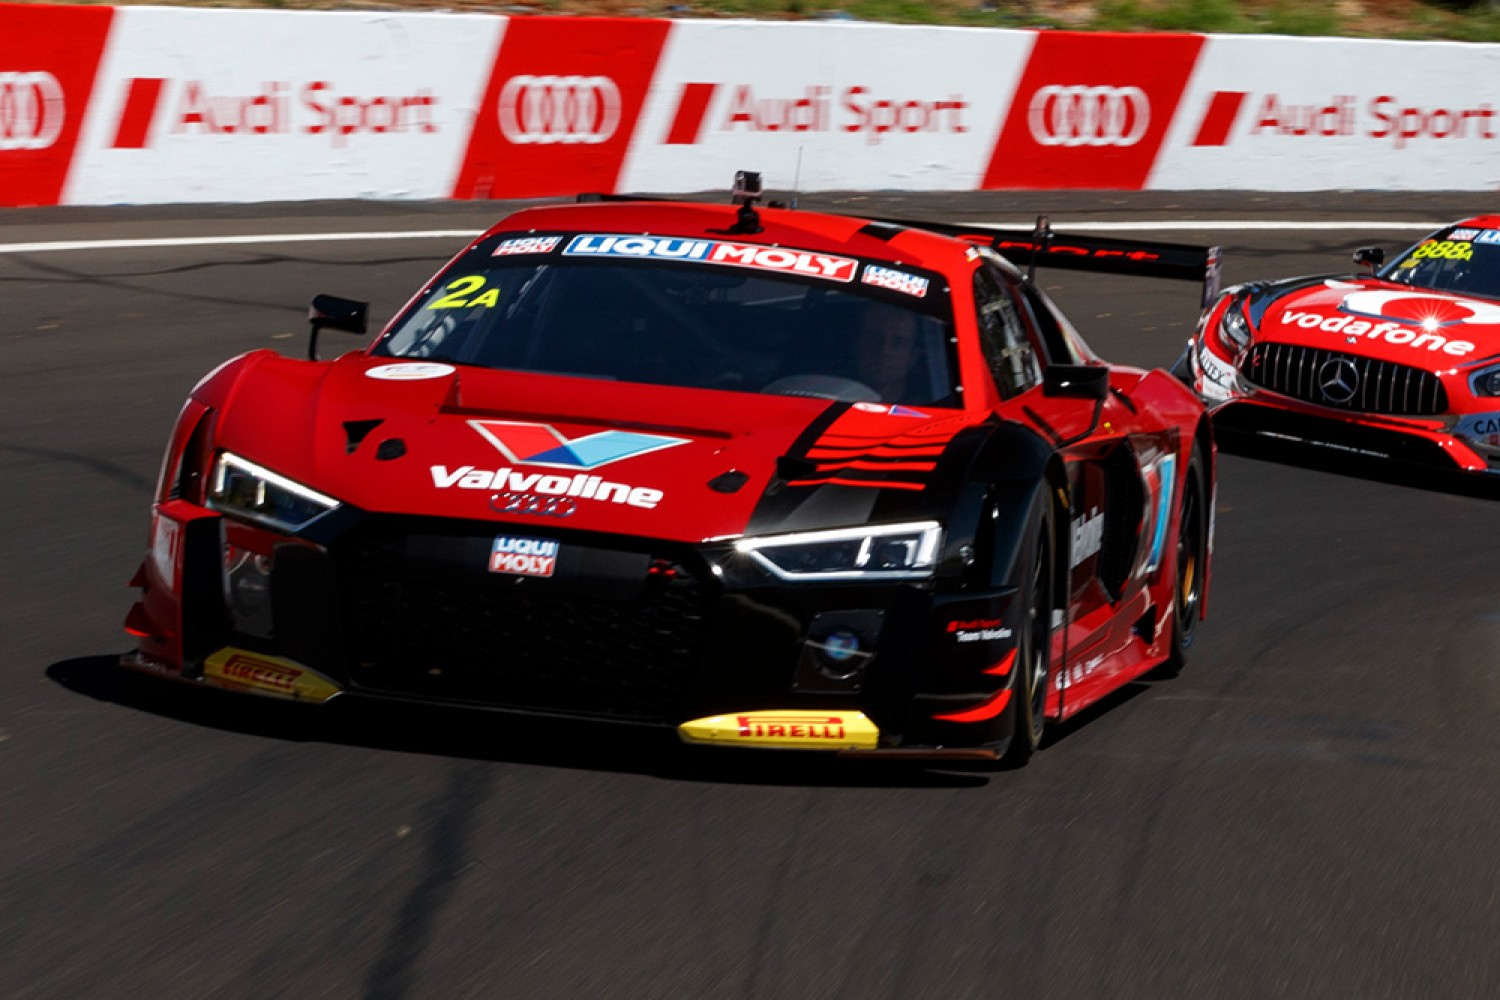 Bathurst FP3: Haase's Audi leads top-14 covered by 0.8s